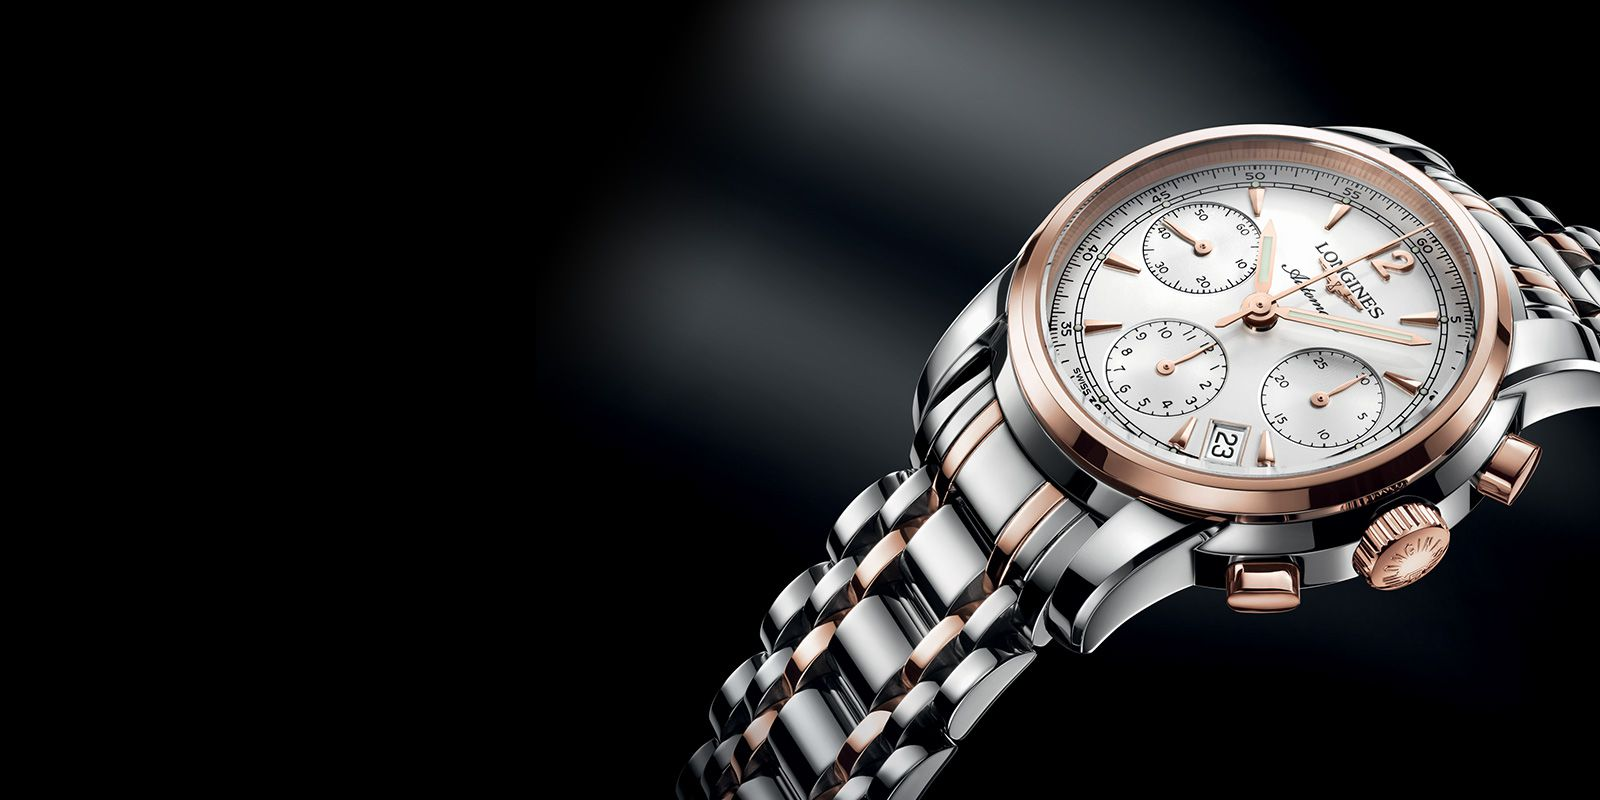 c6a26b9bef4 The Longines® Saint Imier Collection: Watches born of Tradition ...